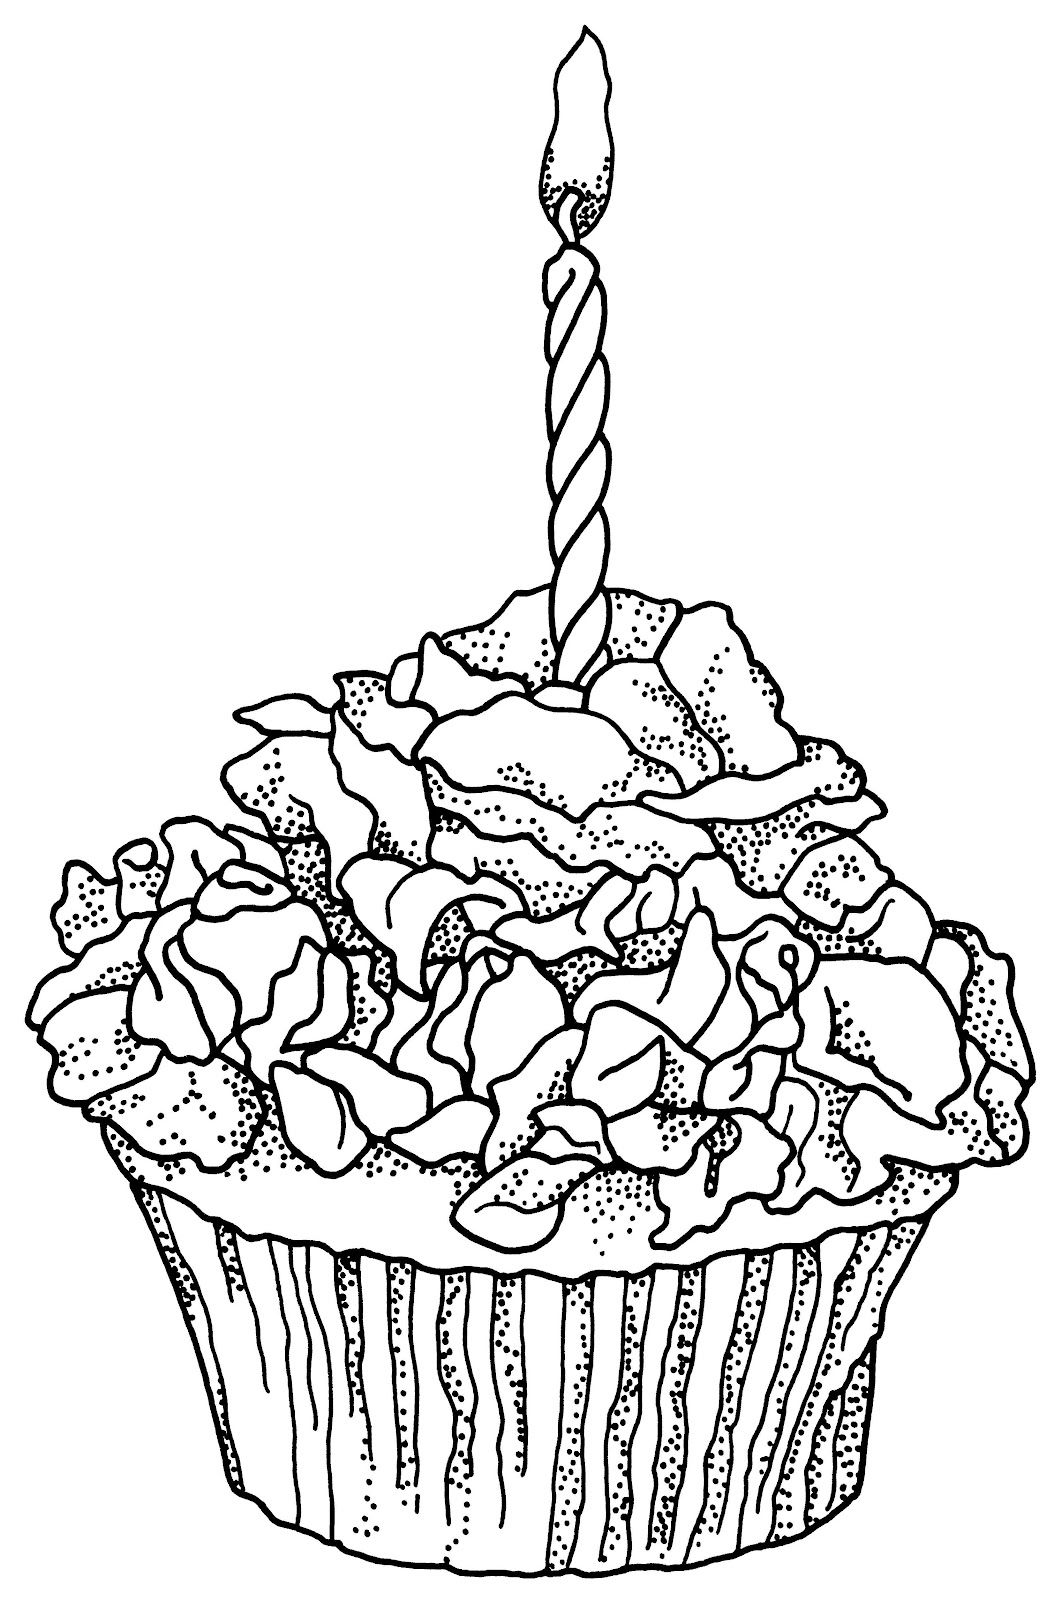 cup cake coloring pictures cup cake coloring pictures cup cake pictures coloring